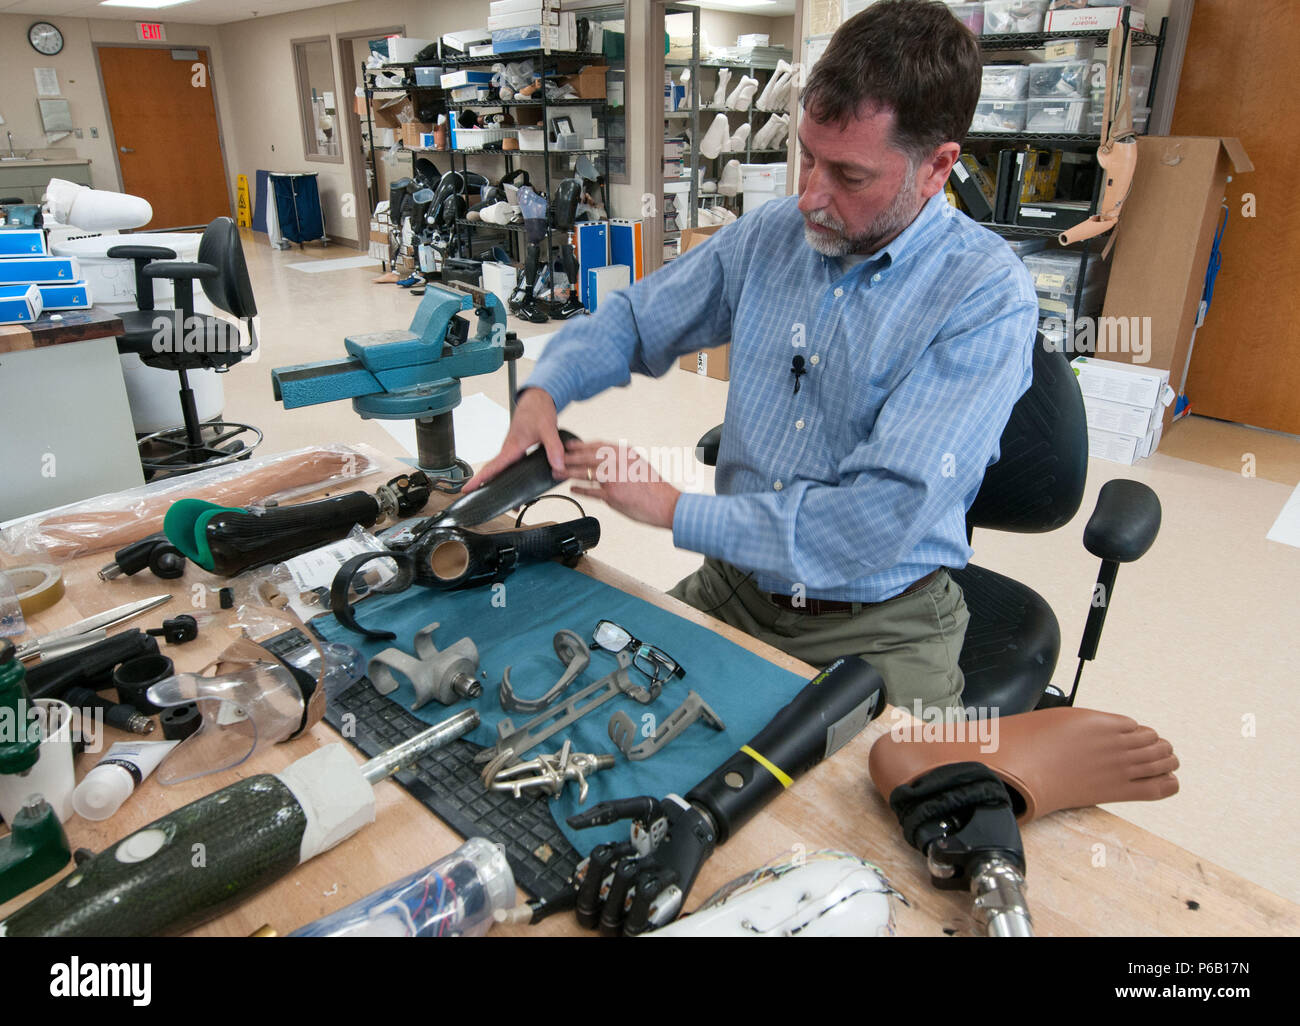 David Beachler, a prosthetist, works at his desk inside the prosthetics fabrication room at Walter Reed National Military Medical Center in Bethesda, Md., April 13, 2016. Amputees are consulted before prosthetists design their customized lightweight prosthetics, which weigh less than the actual limb lost. Many of the devices are made or modified in-house. (U.S. Air Force photo/Sean Kimmons) - Stock Image